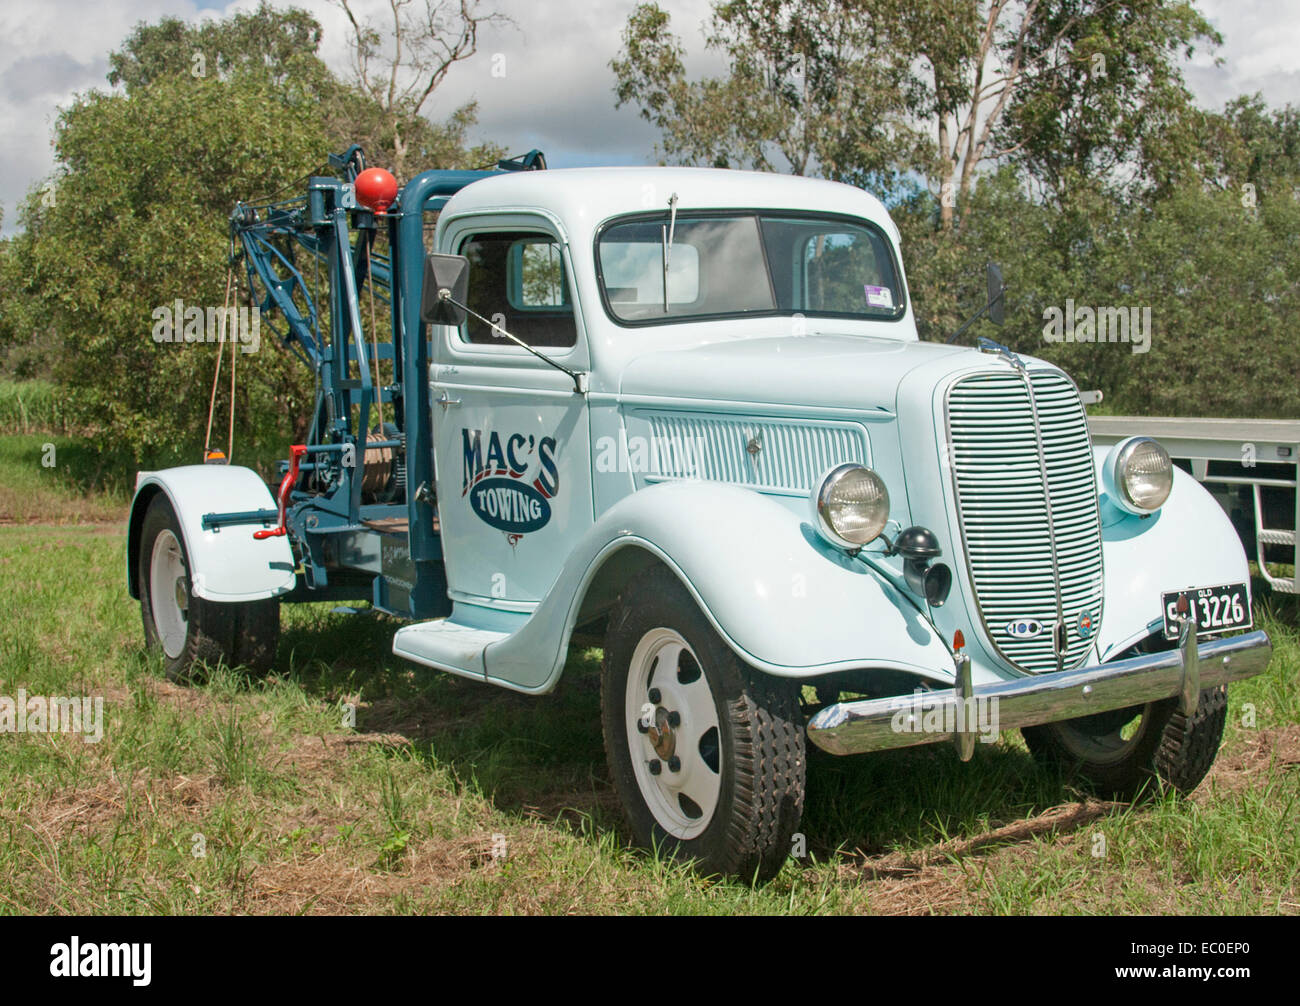 Pale blue restored vintage tow truck with winch and other equipment in working condition - Stock Image